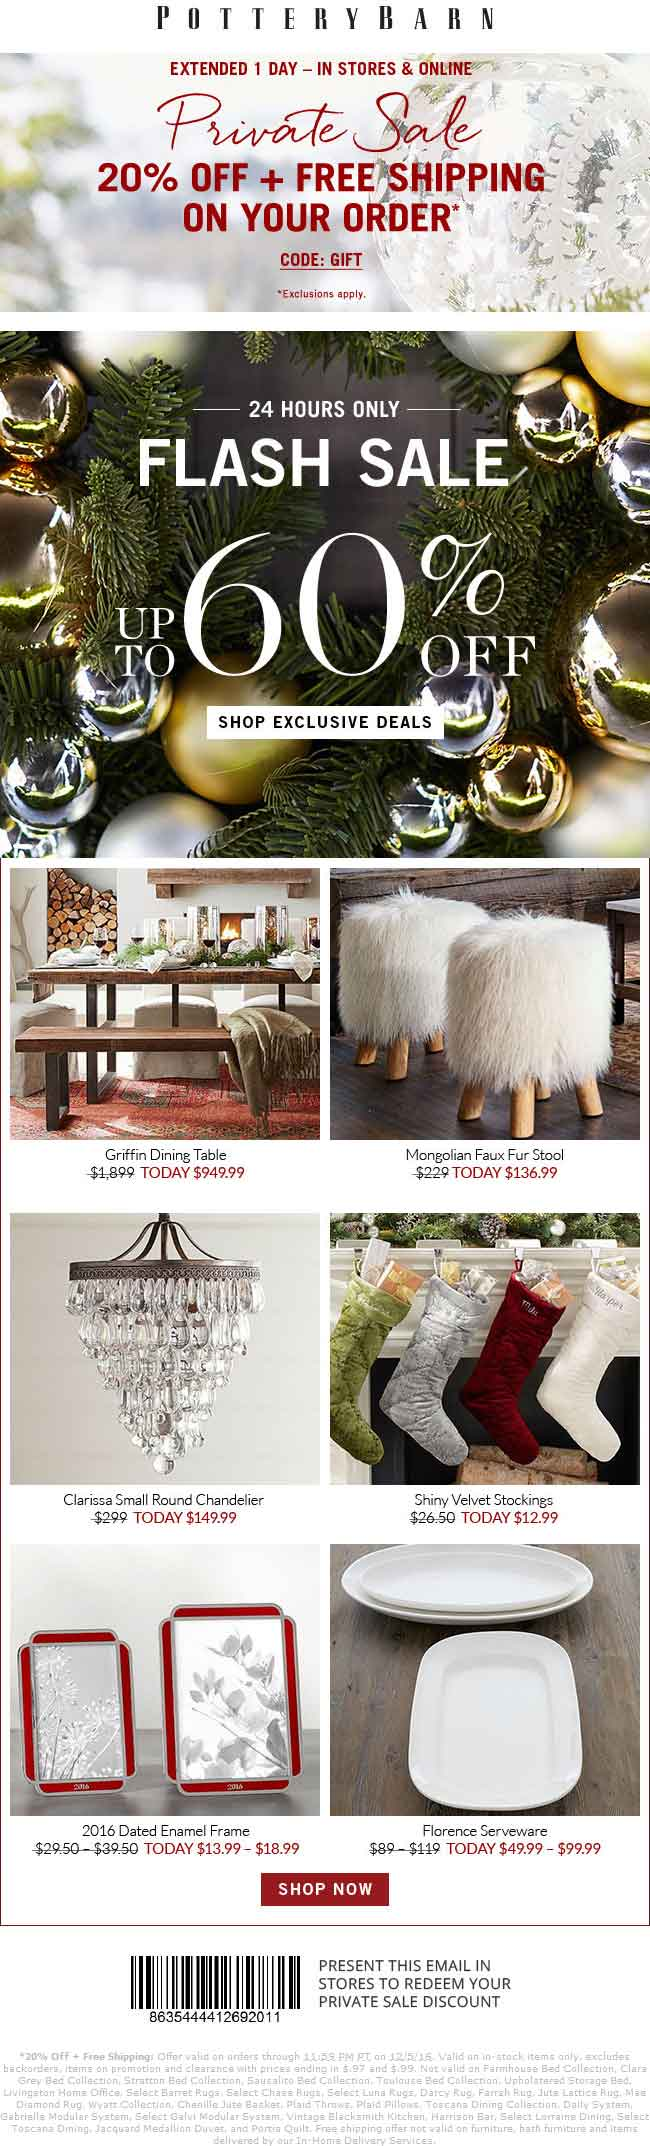 PotteryBarn.com Promo Coupon 20% off today at Pottery Barn, or online with free ship via promo code GIFT